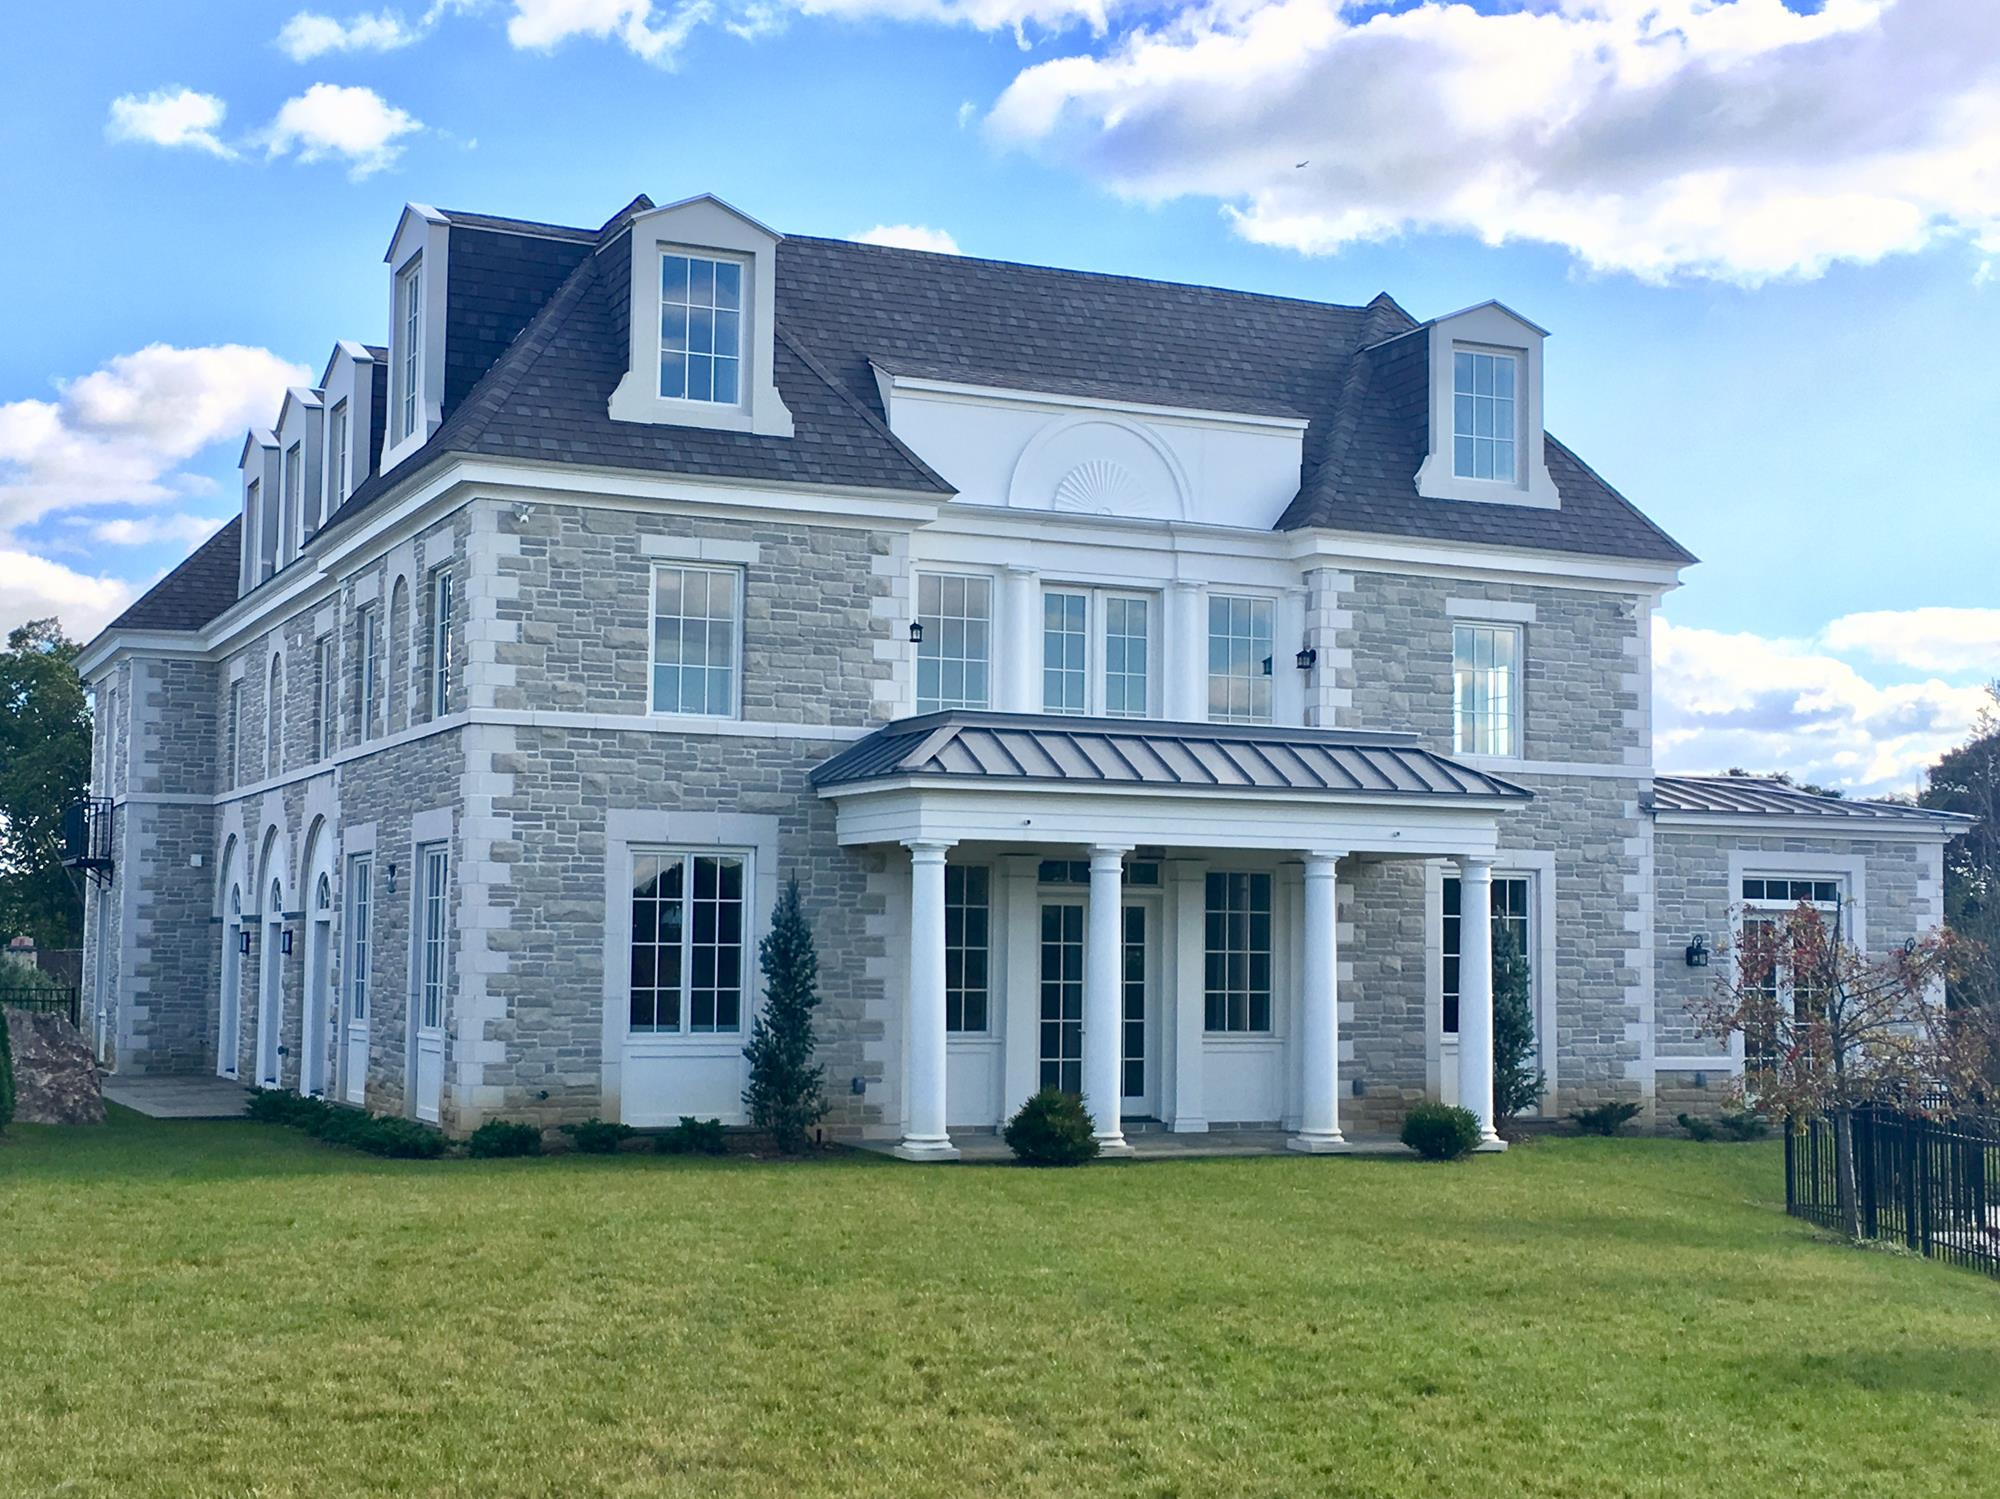 RIVERDALE MANSION:  Grand 8-Bedroom, 6.5-Bath, 10,700+ sq. ft., American Chateau-style house in exclusive, private community.  Multiple porches & commanding views.  Private outdoor swimming pool.  Attached 4-car garage. Exquisite details & luxurious amenities.   Completion Summer 2018.